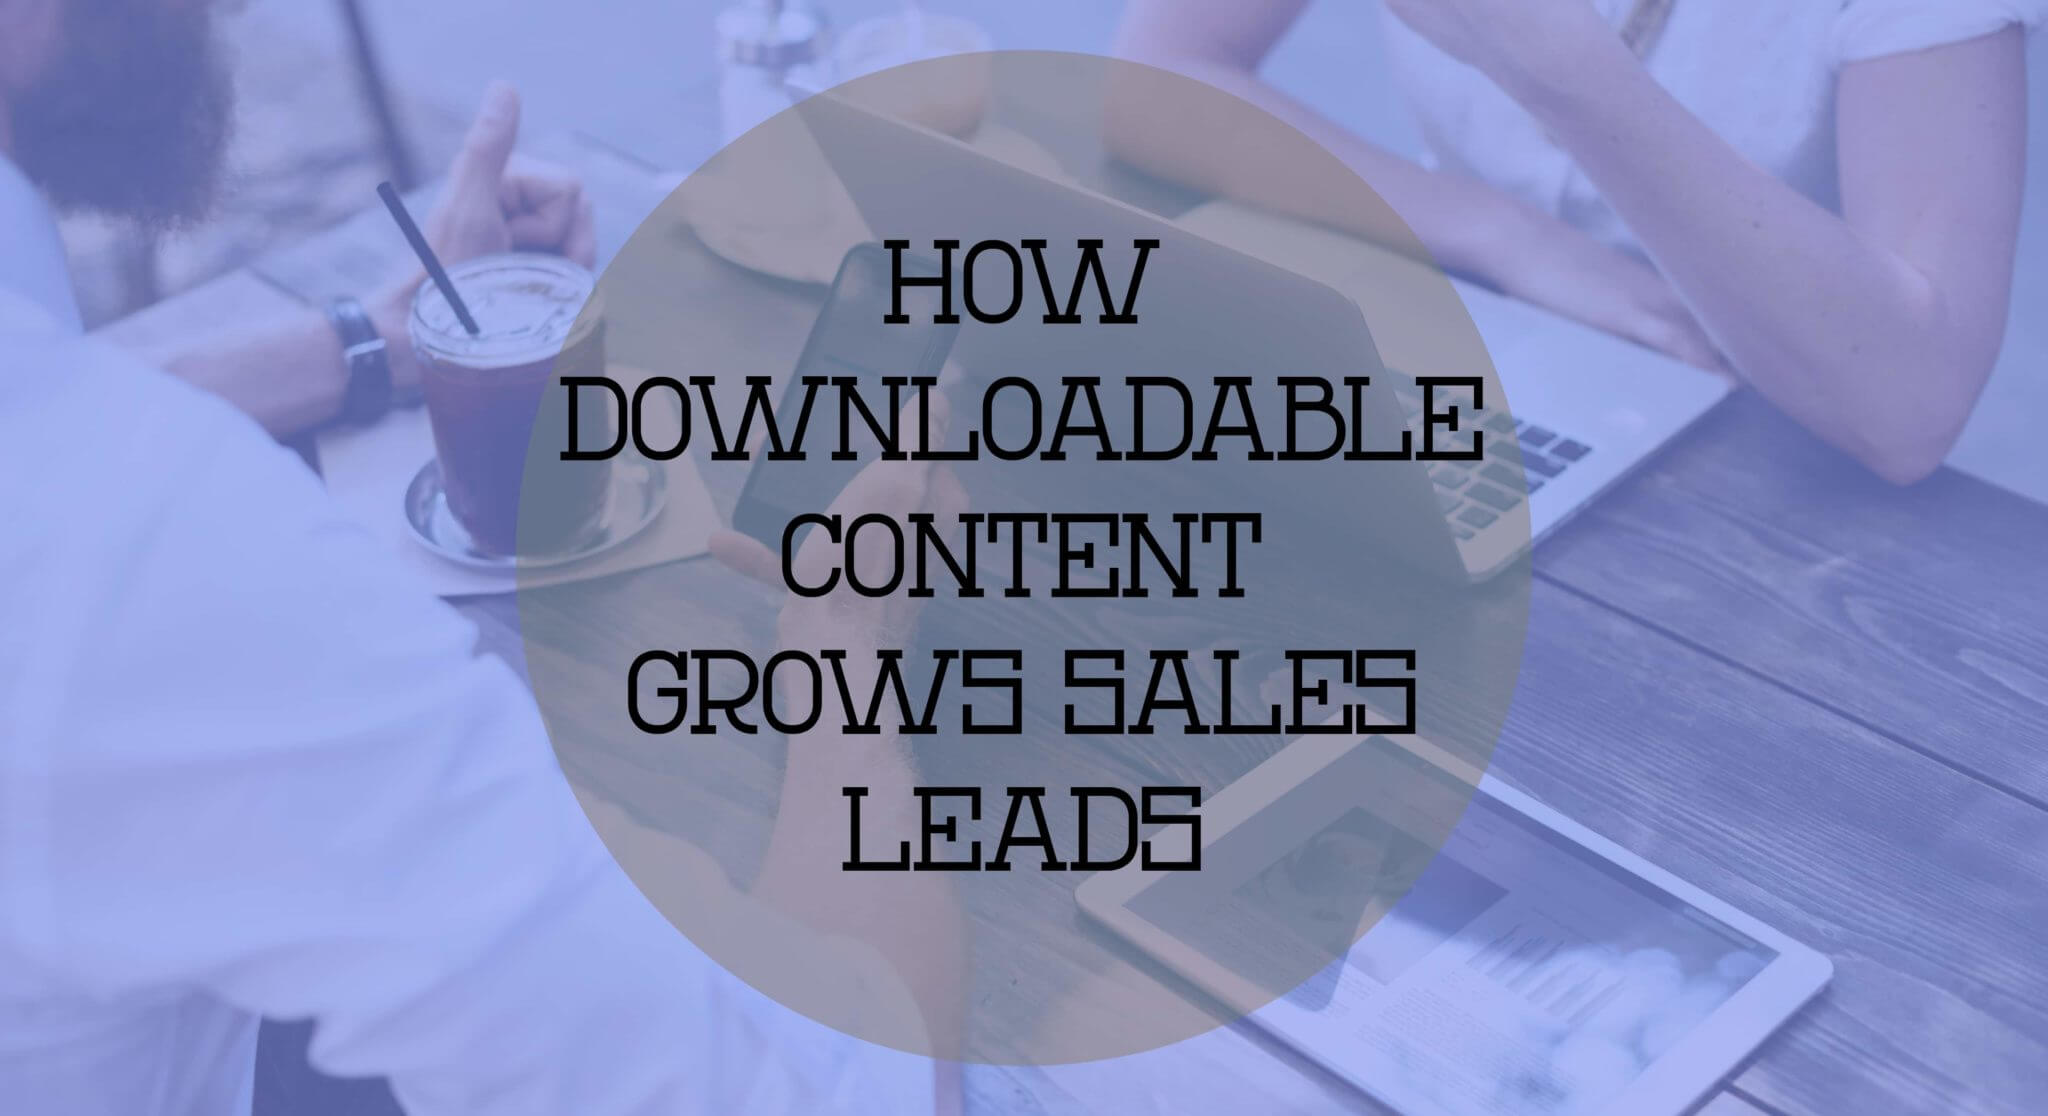 How Downloadable Content Grows Sales Leads